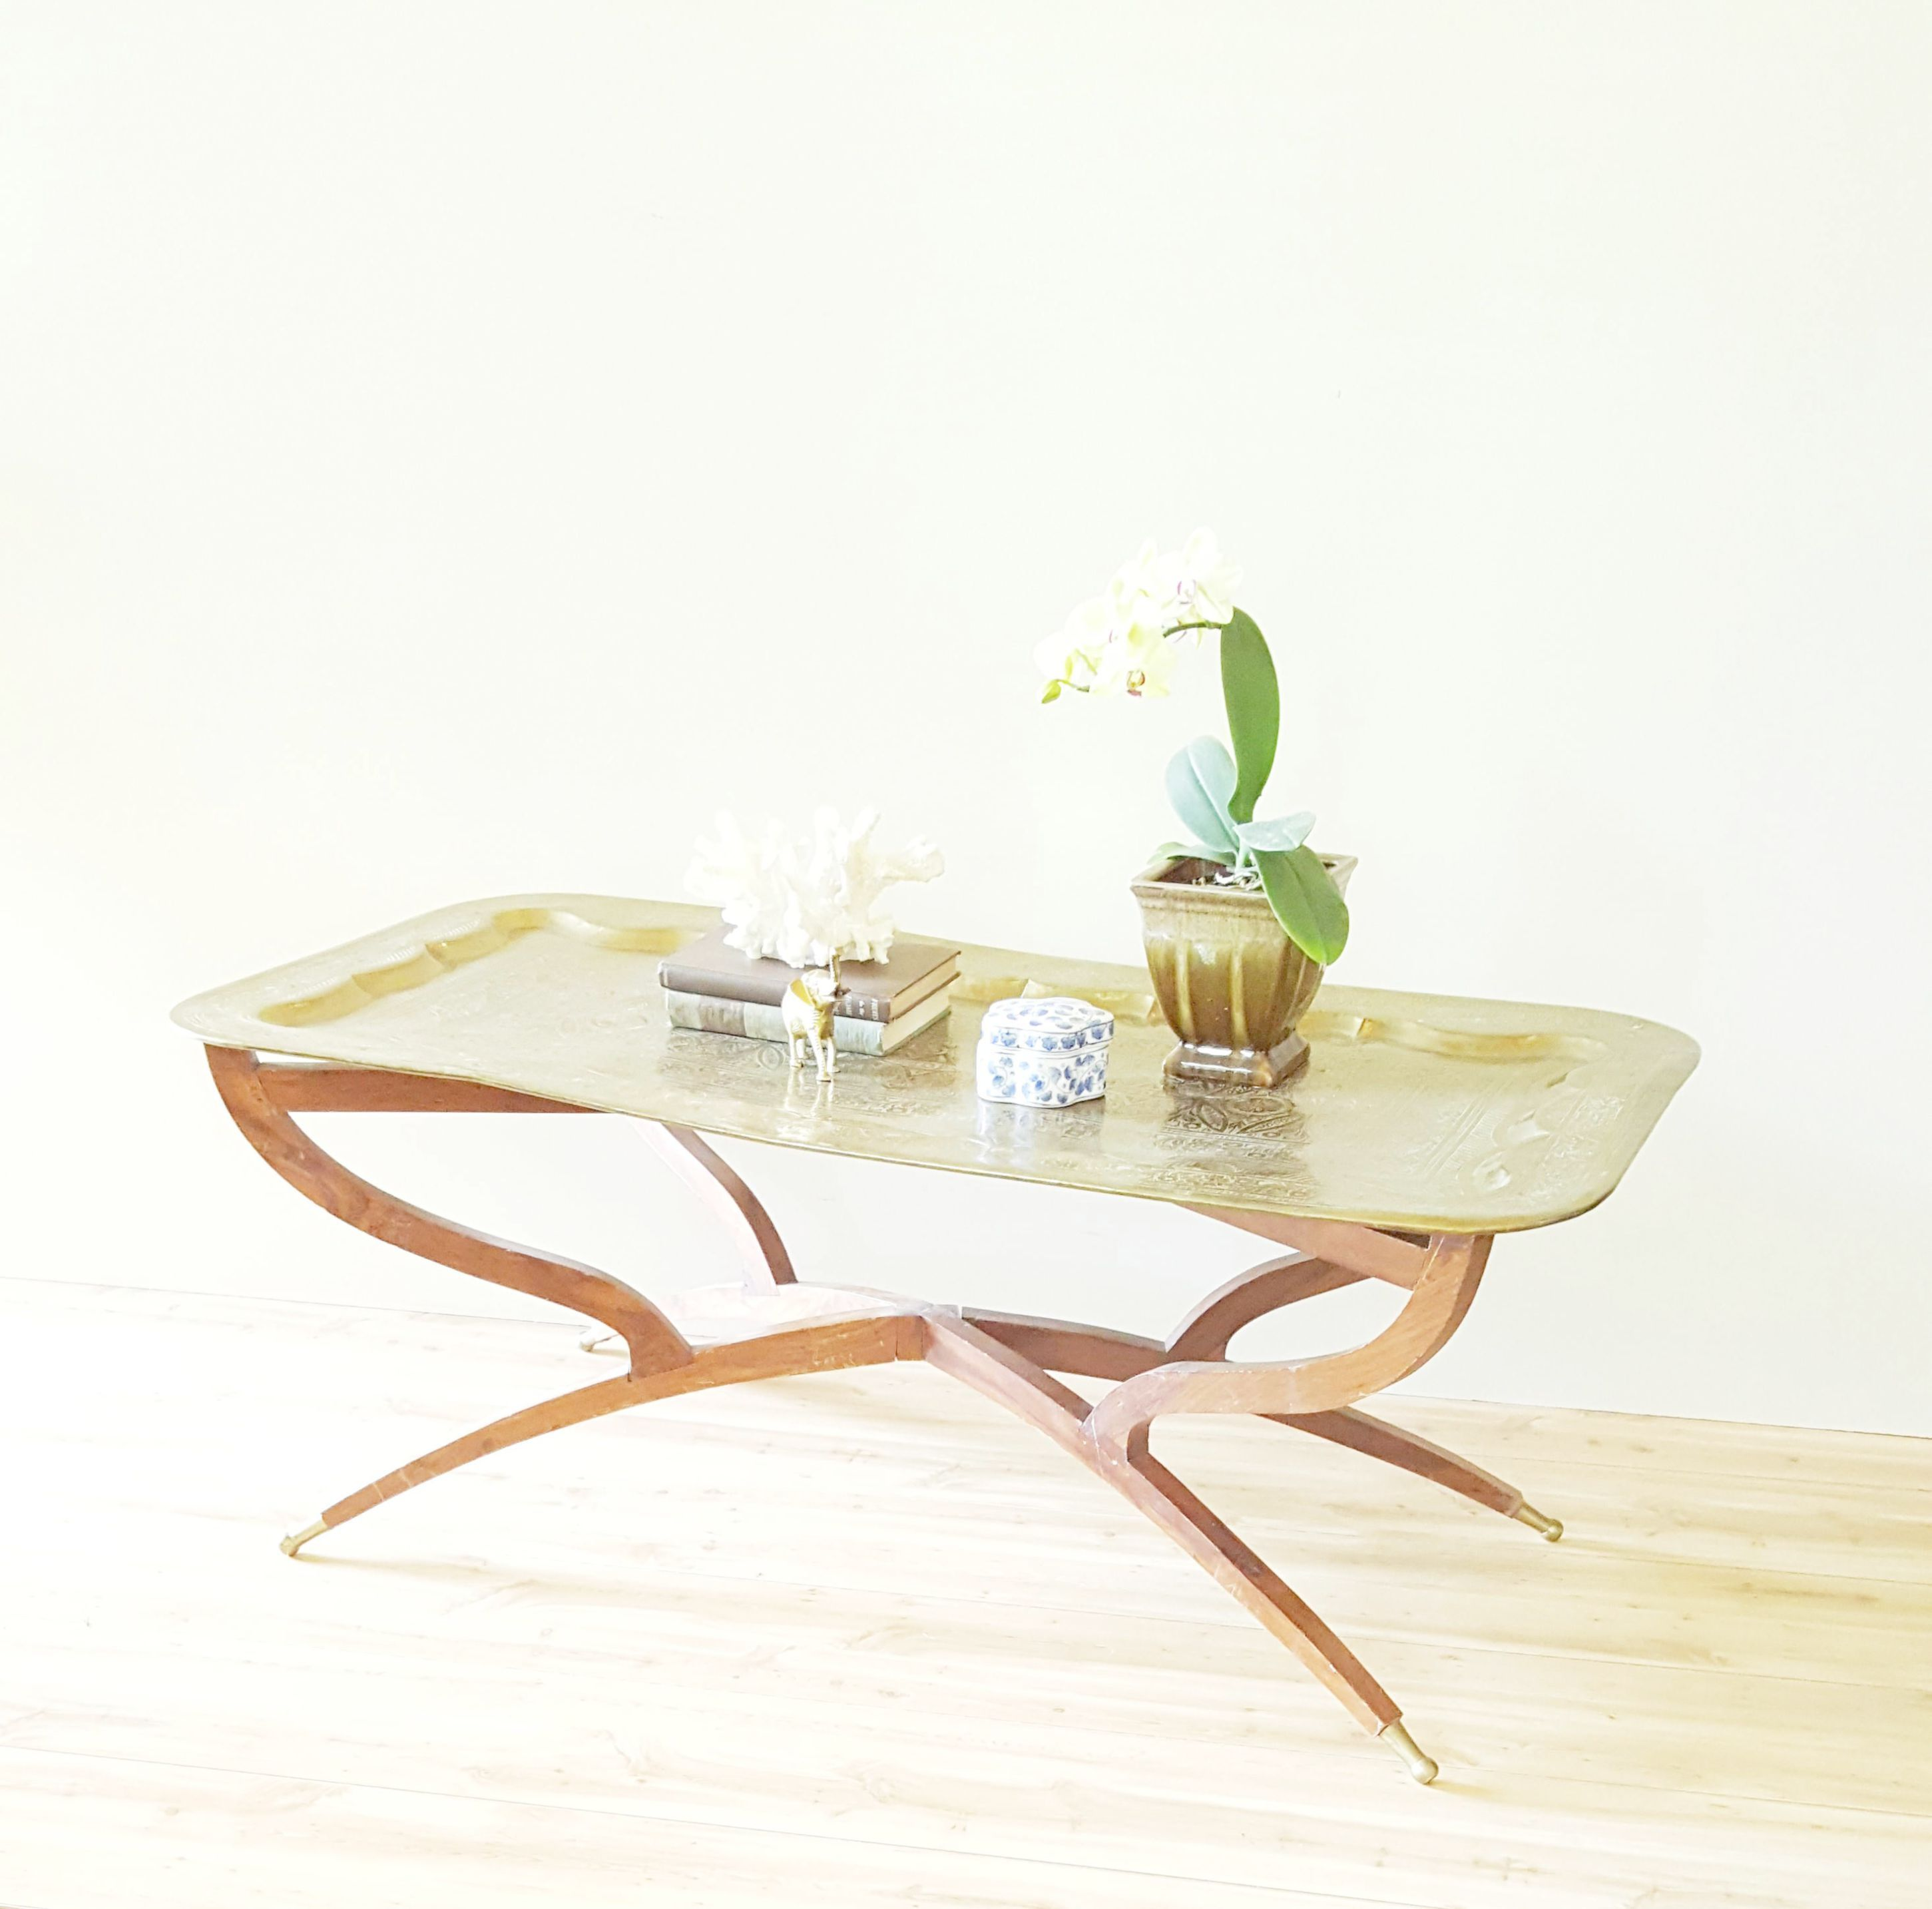 Ideas To Help You Select Quality Coffee Coffee table